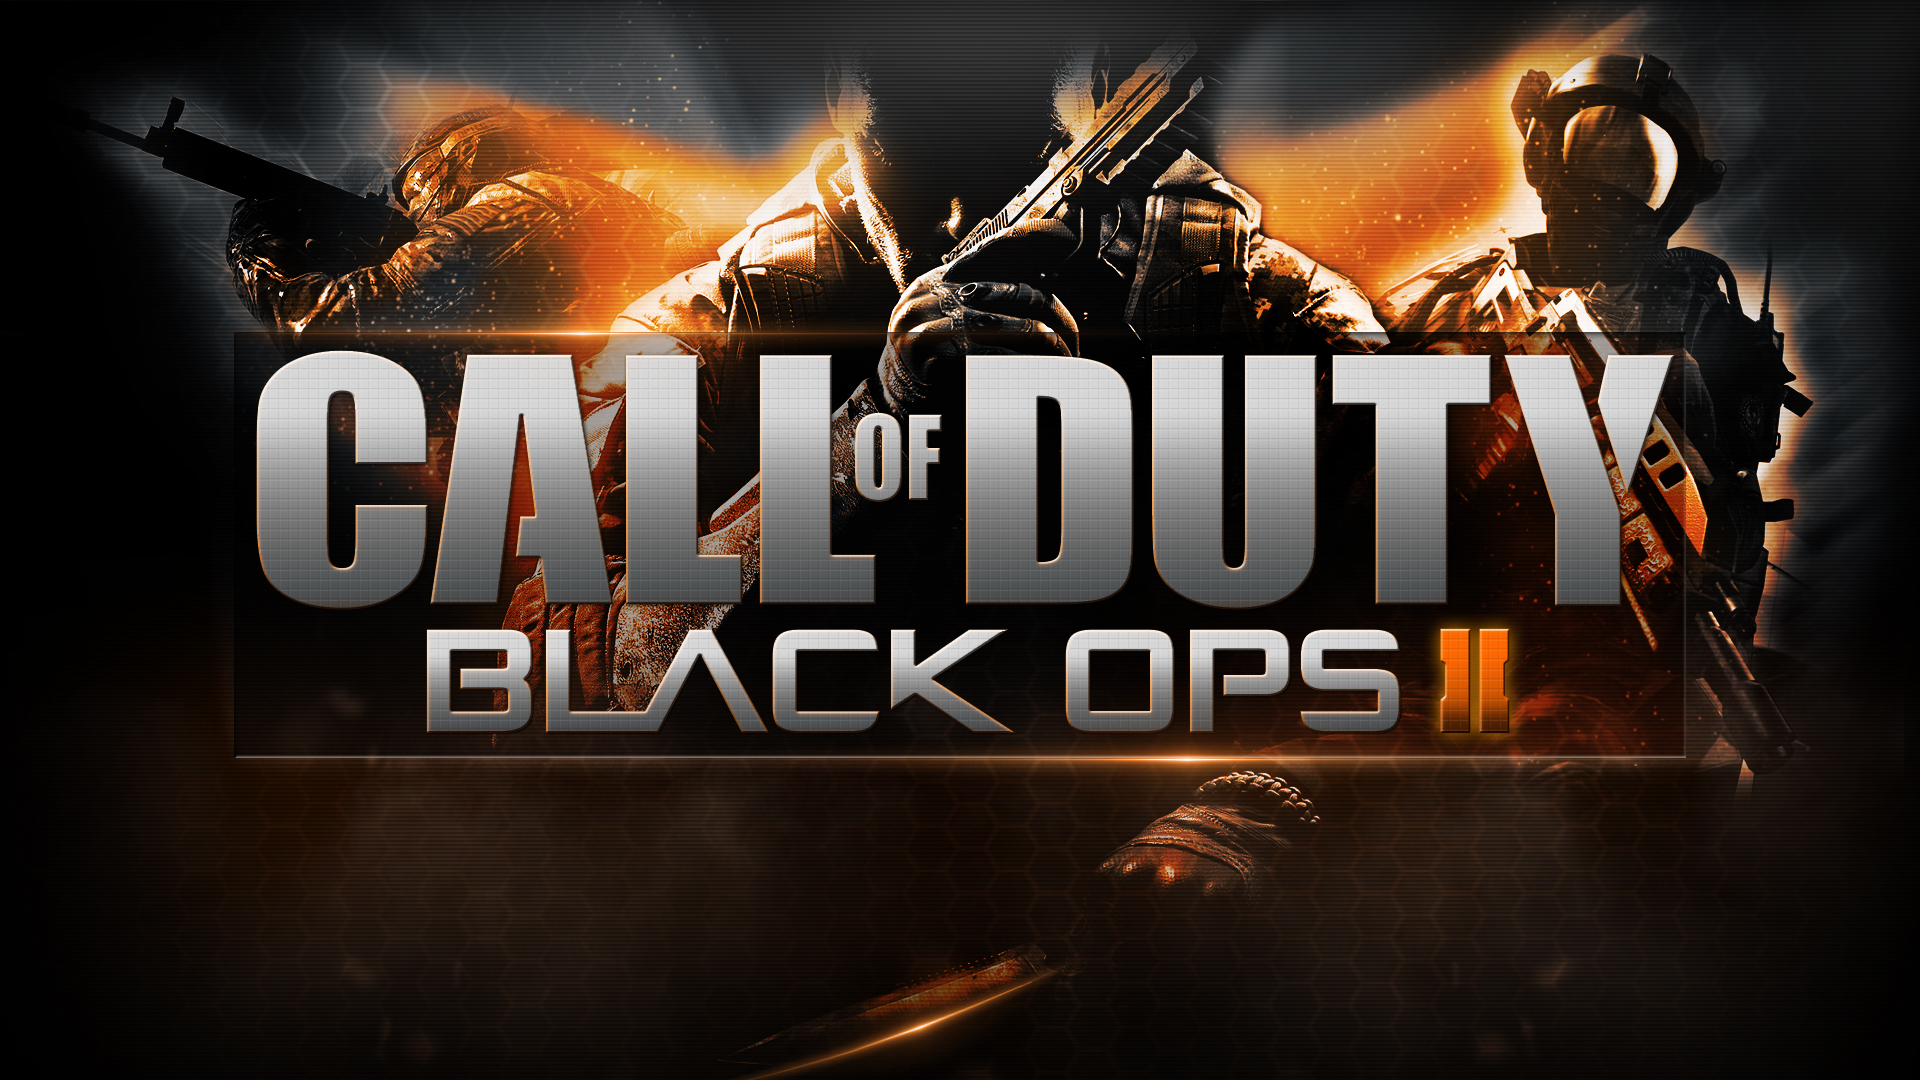 36 Call Of Duty Backgrounds Download Free Beautiful Hd: Call Of Duty Black Ops 2 Zombie HD Wallpapers Pictures